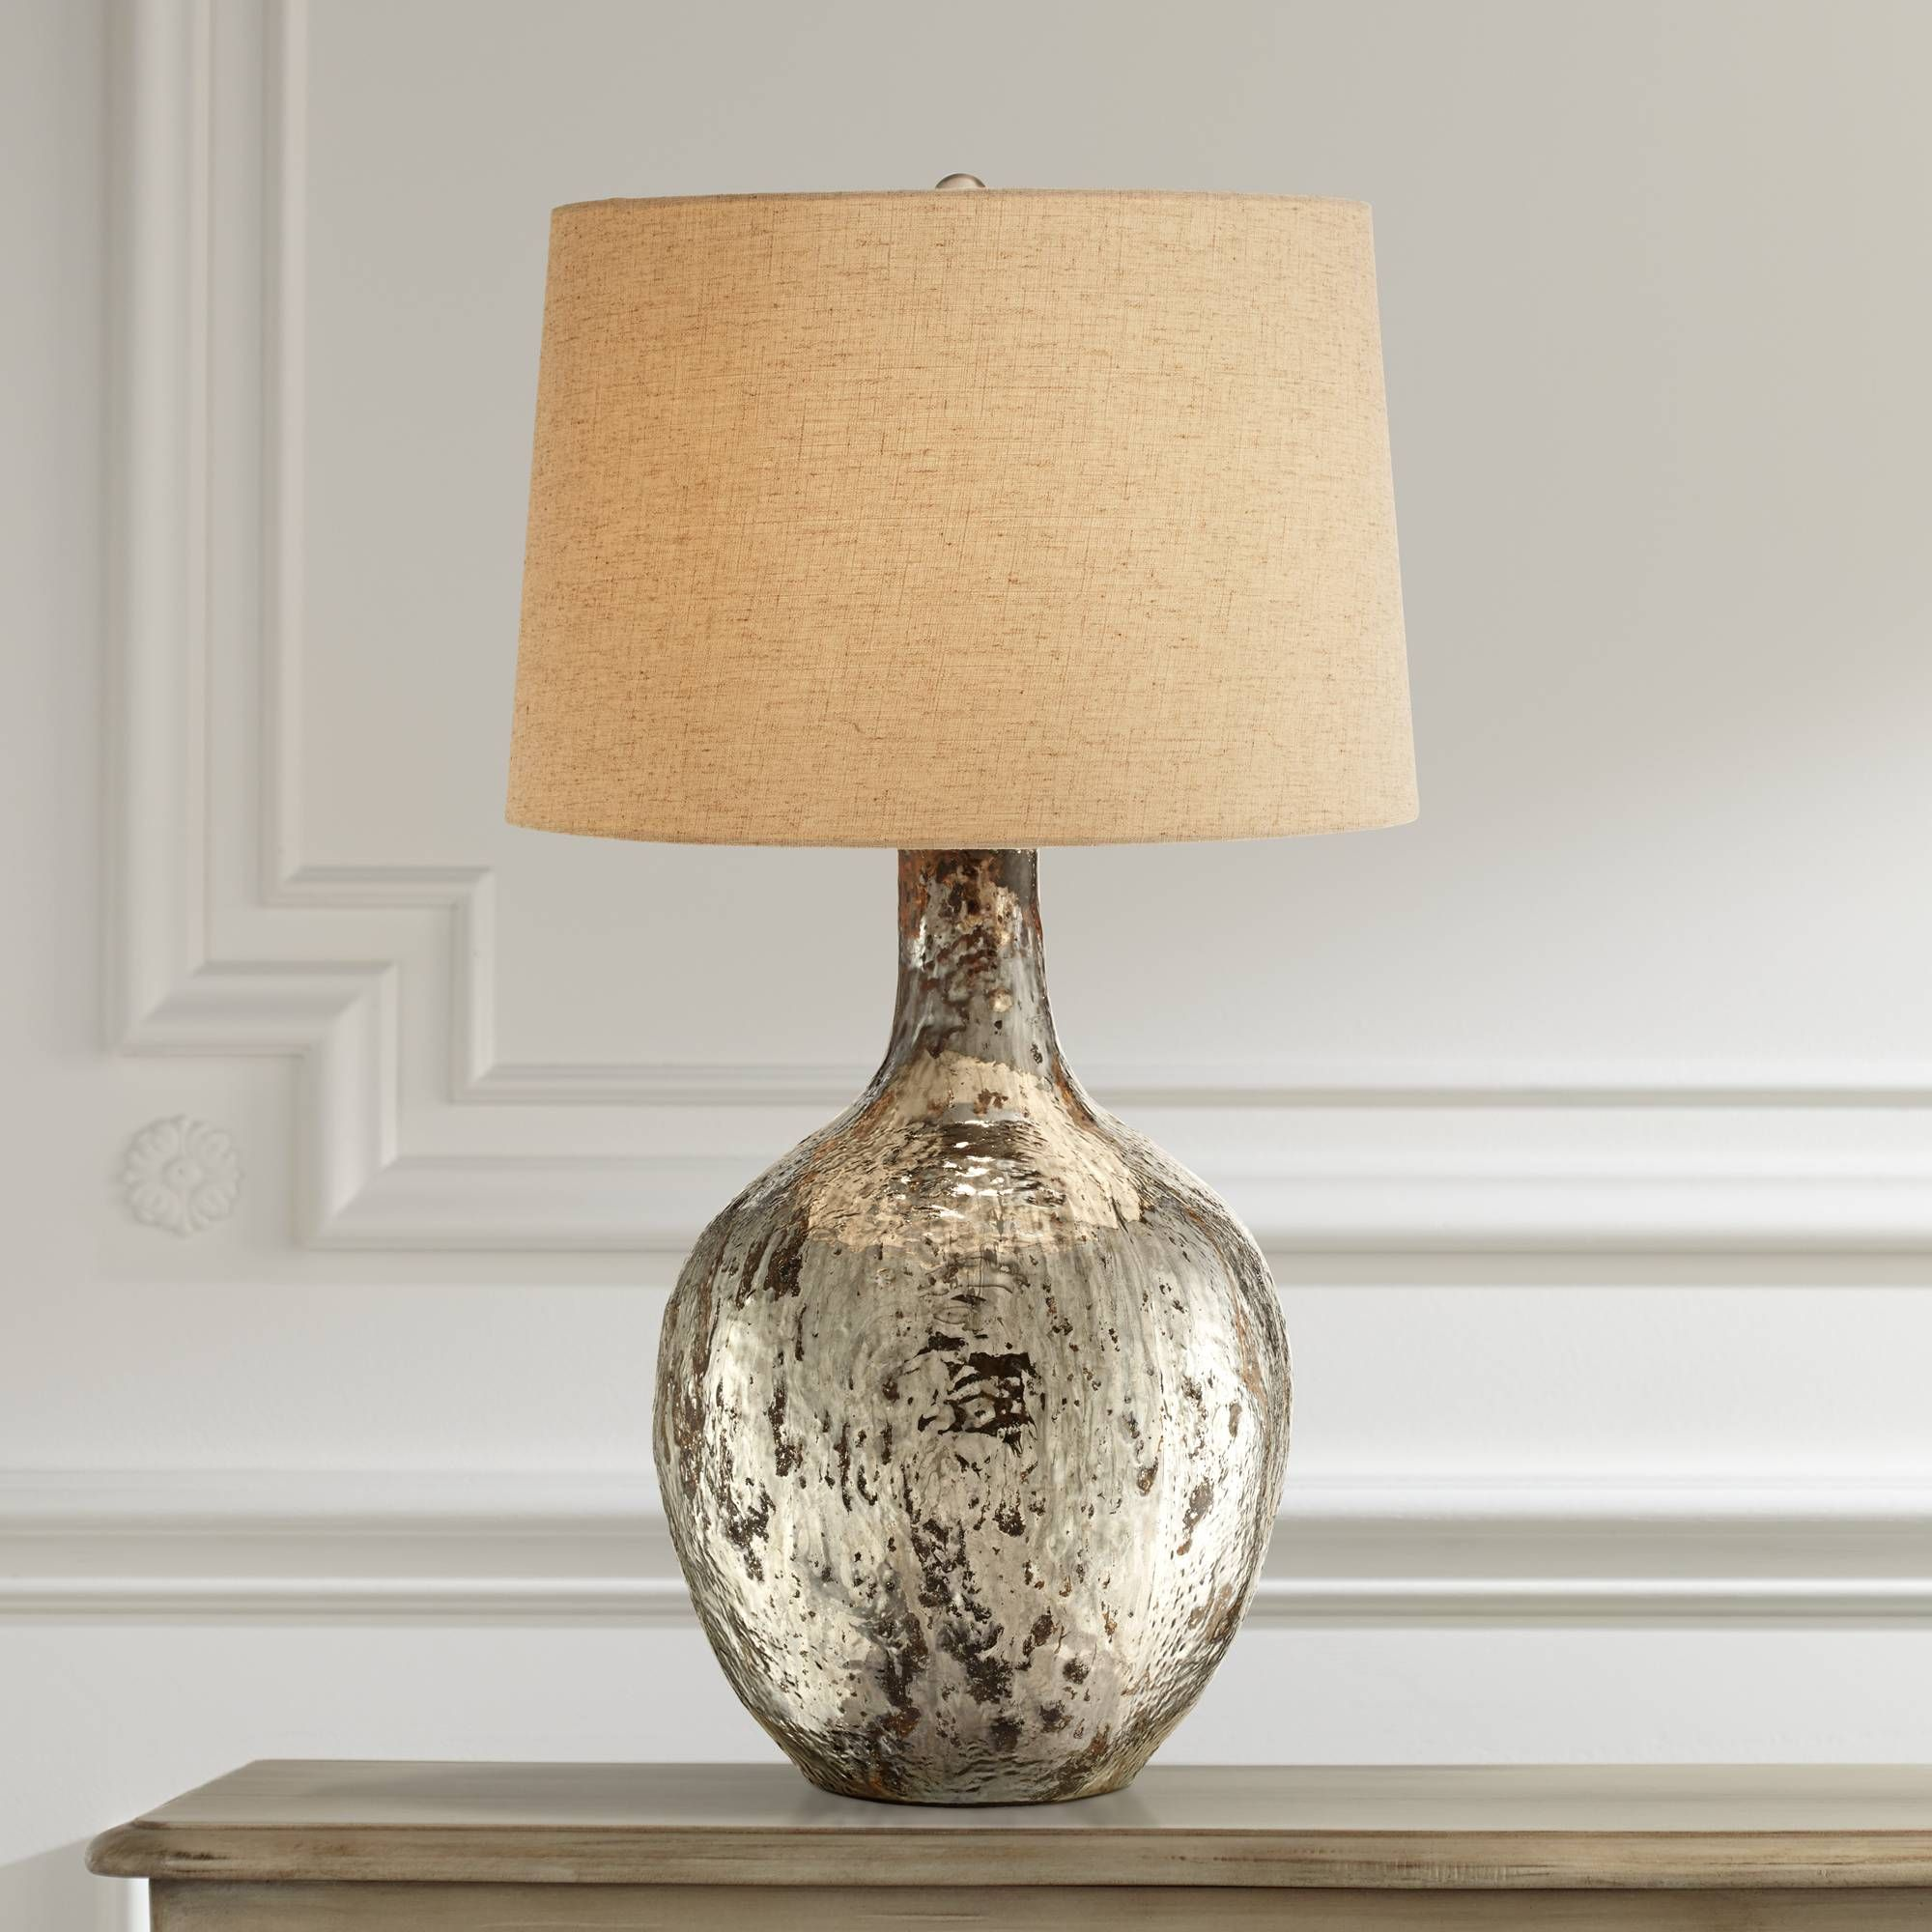 aspen wrought soft rustic comely unusual then shades gsource cottage home appealing hanging ga comfy lights shadetelstra style decoration beach uk wayfair chandeliers lamps chandelier table log lamp floor iron